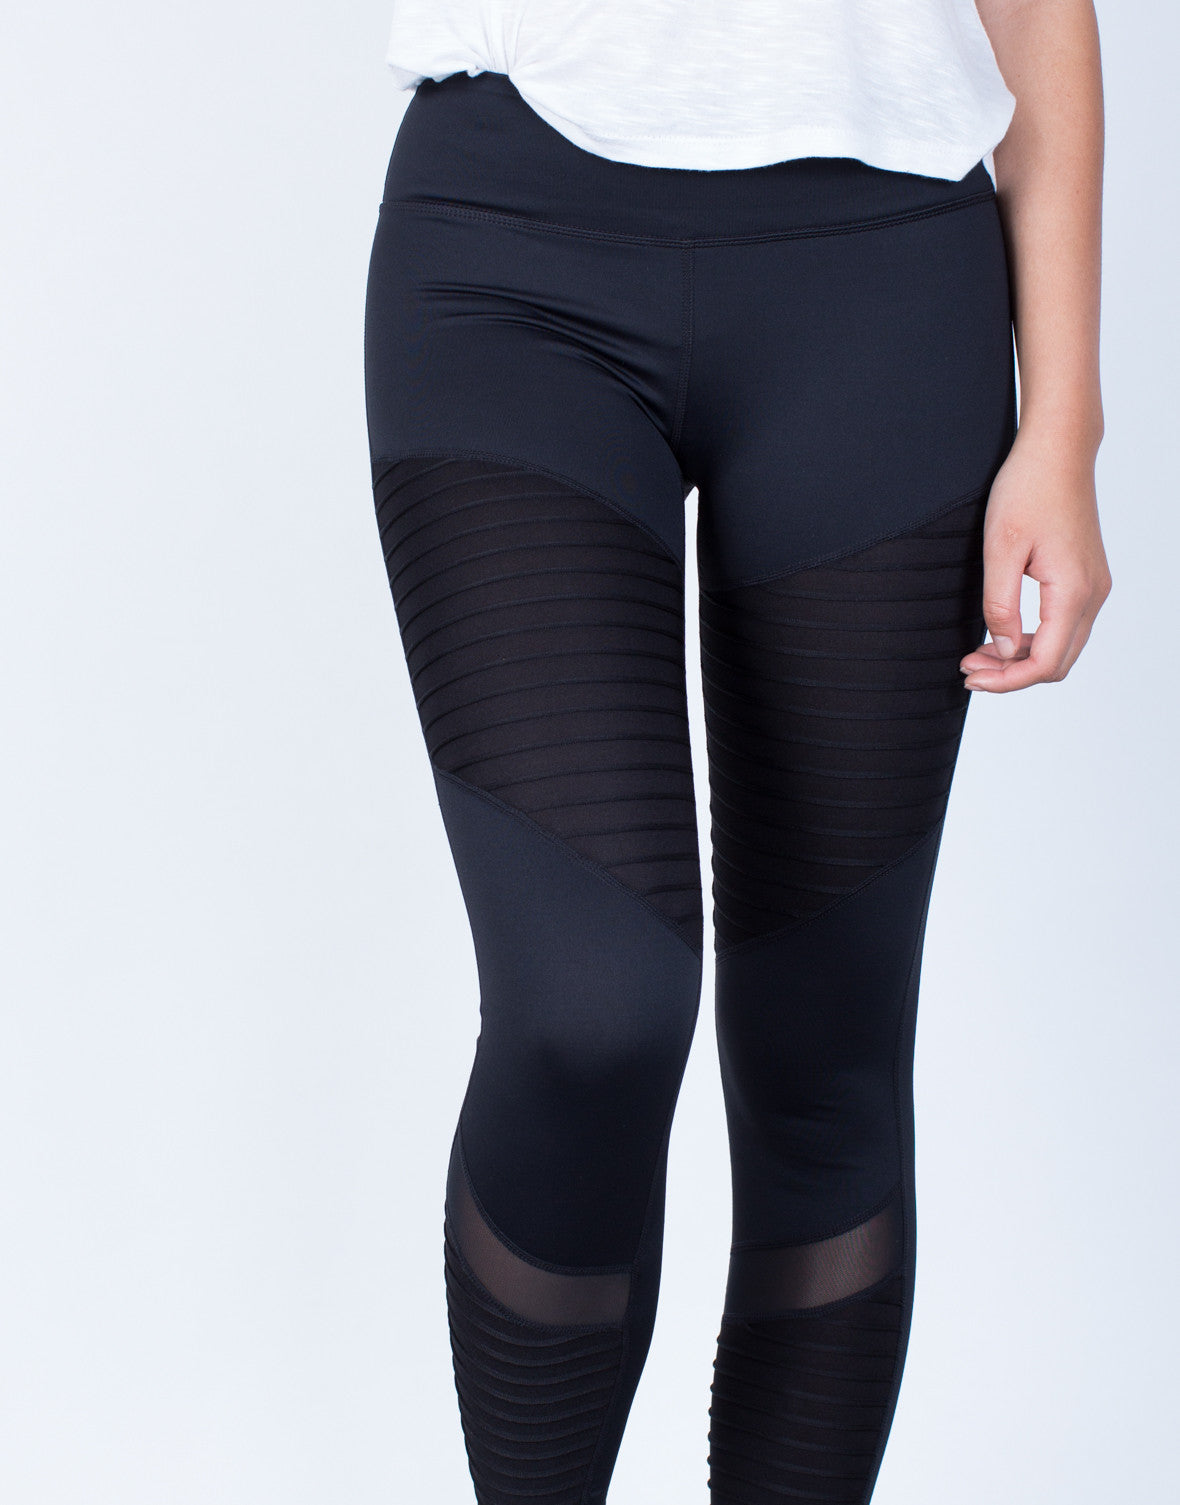 Detail of Mesh Lined Leggings